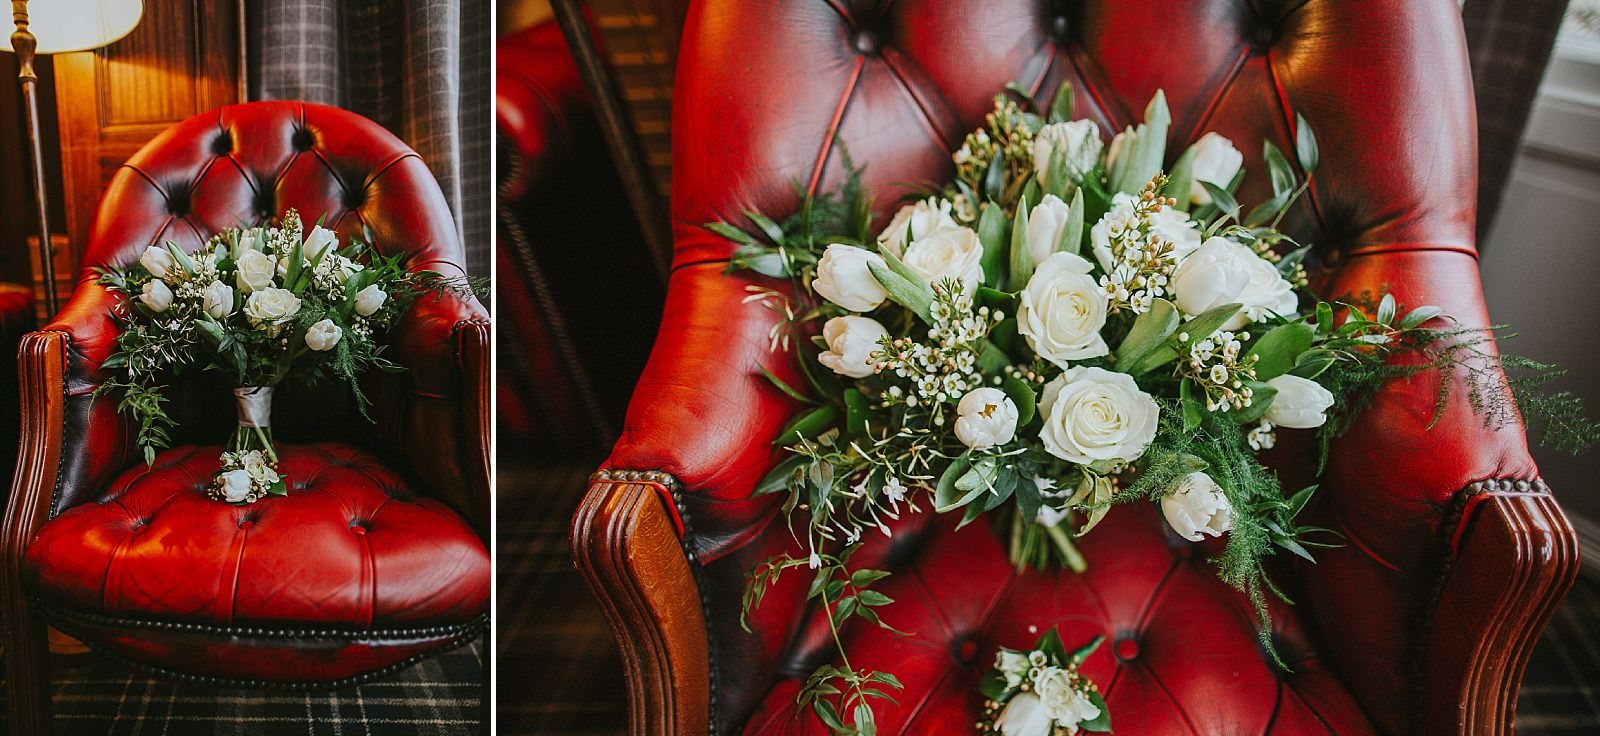 Brides bouqet on a red leather chair at ashfield house